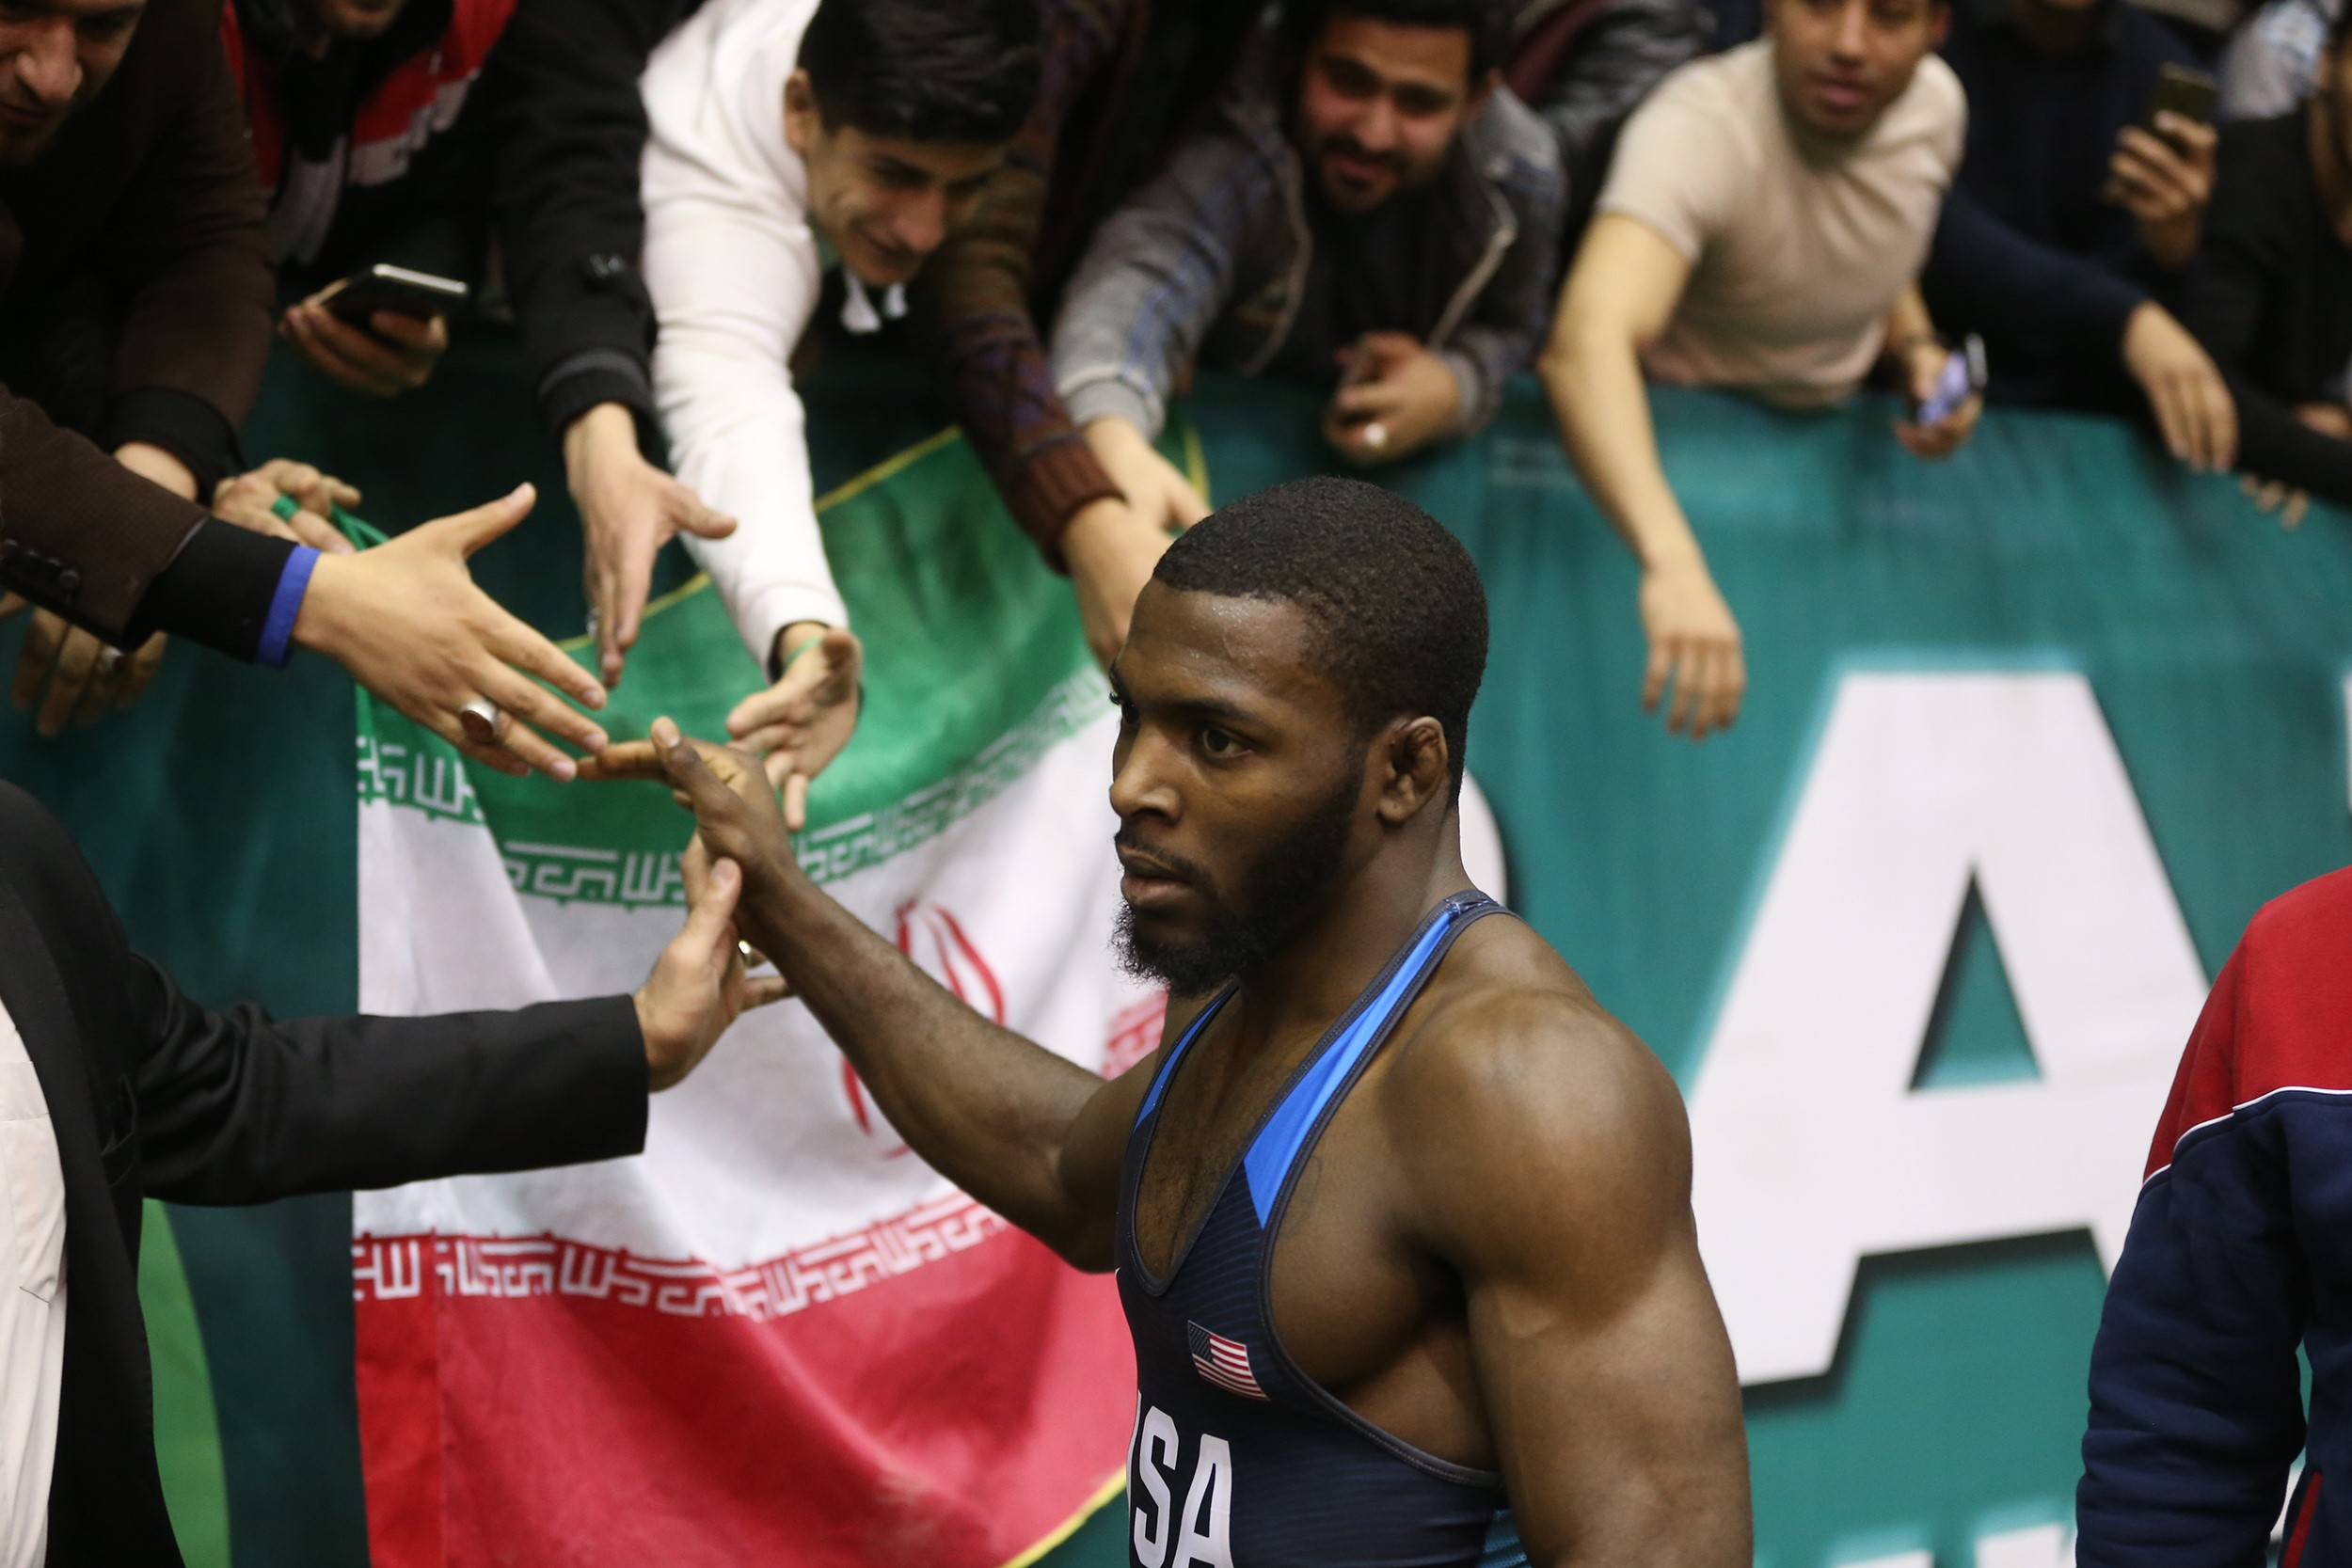 Freestyle World Cup 2017 in Iran